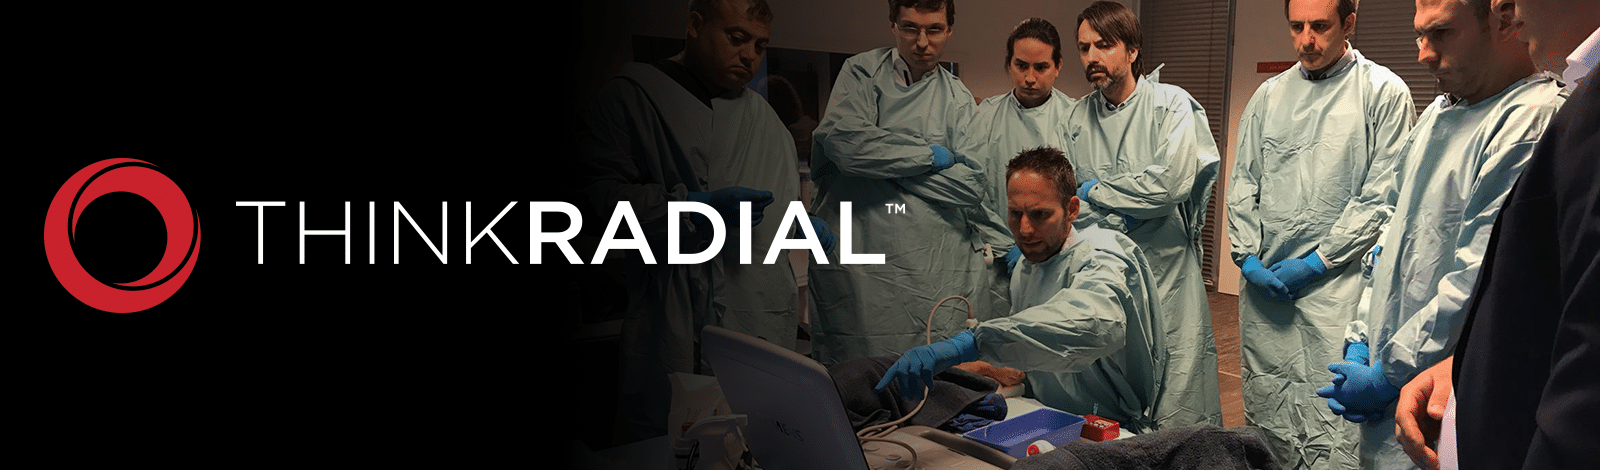 Distal Transradial Access European ThinkRadial